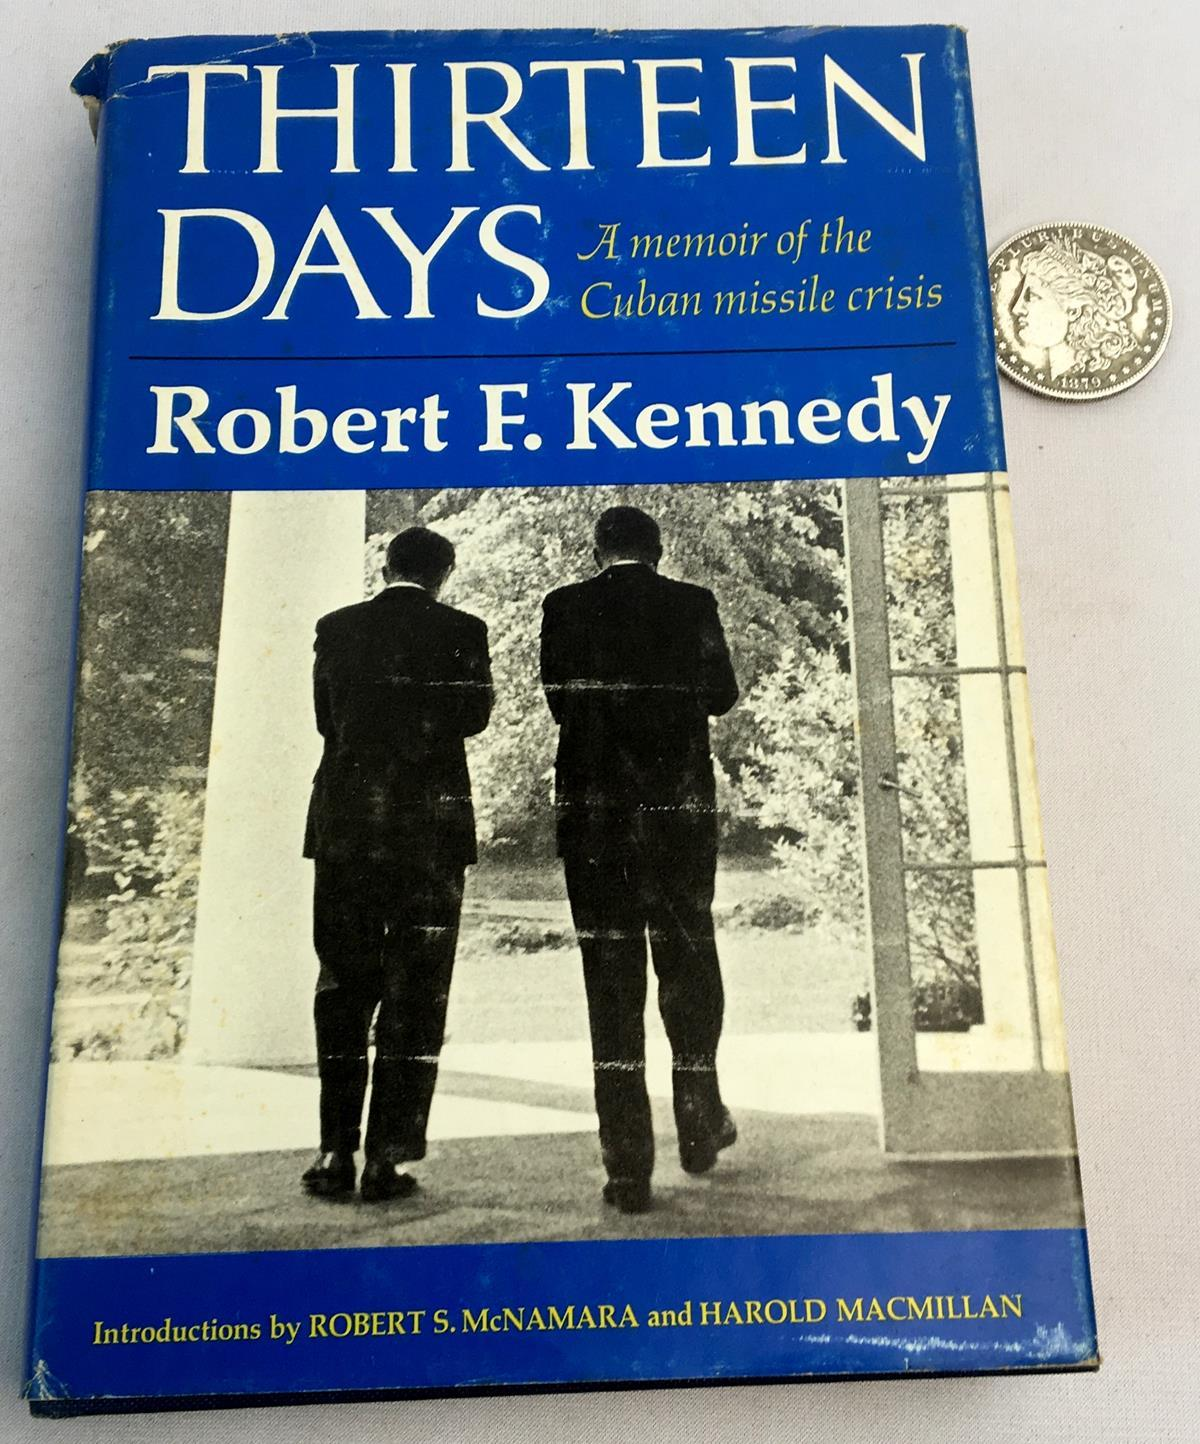 1969 Thirteen Days: A Memoir of the Cuban Missile Crisis by Robert F. Kennedy w/ Dust Jacket FIRST EDITION